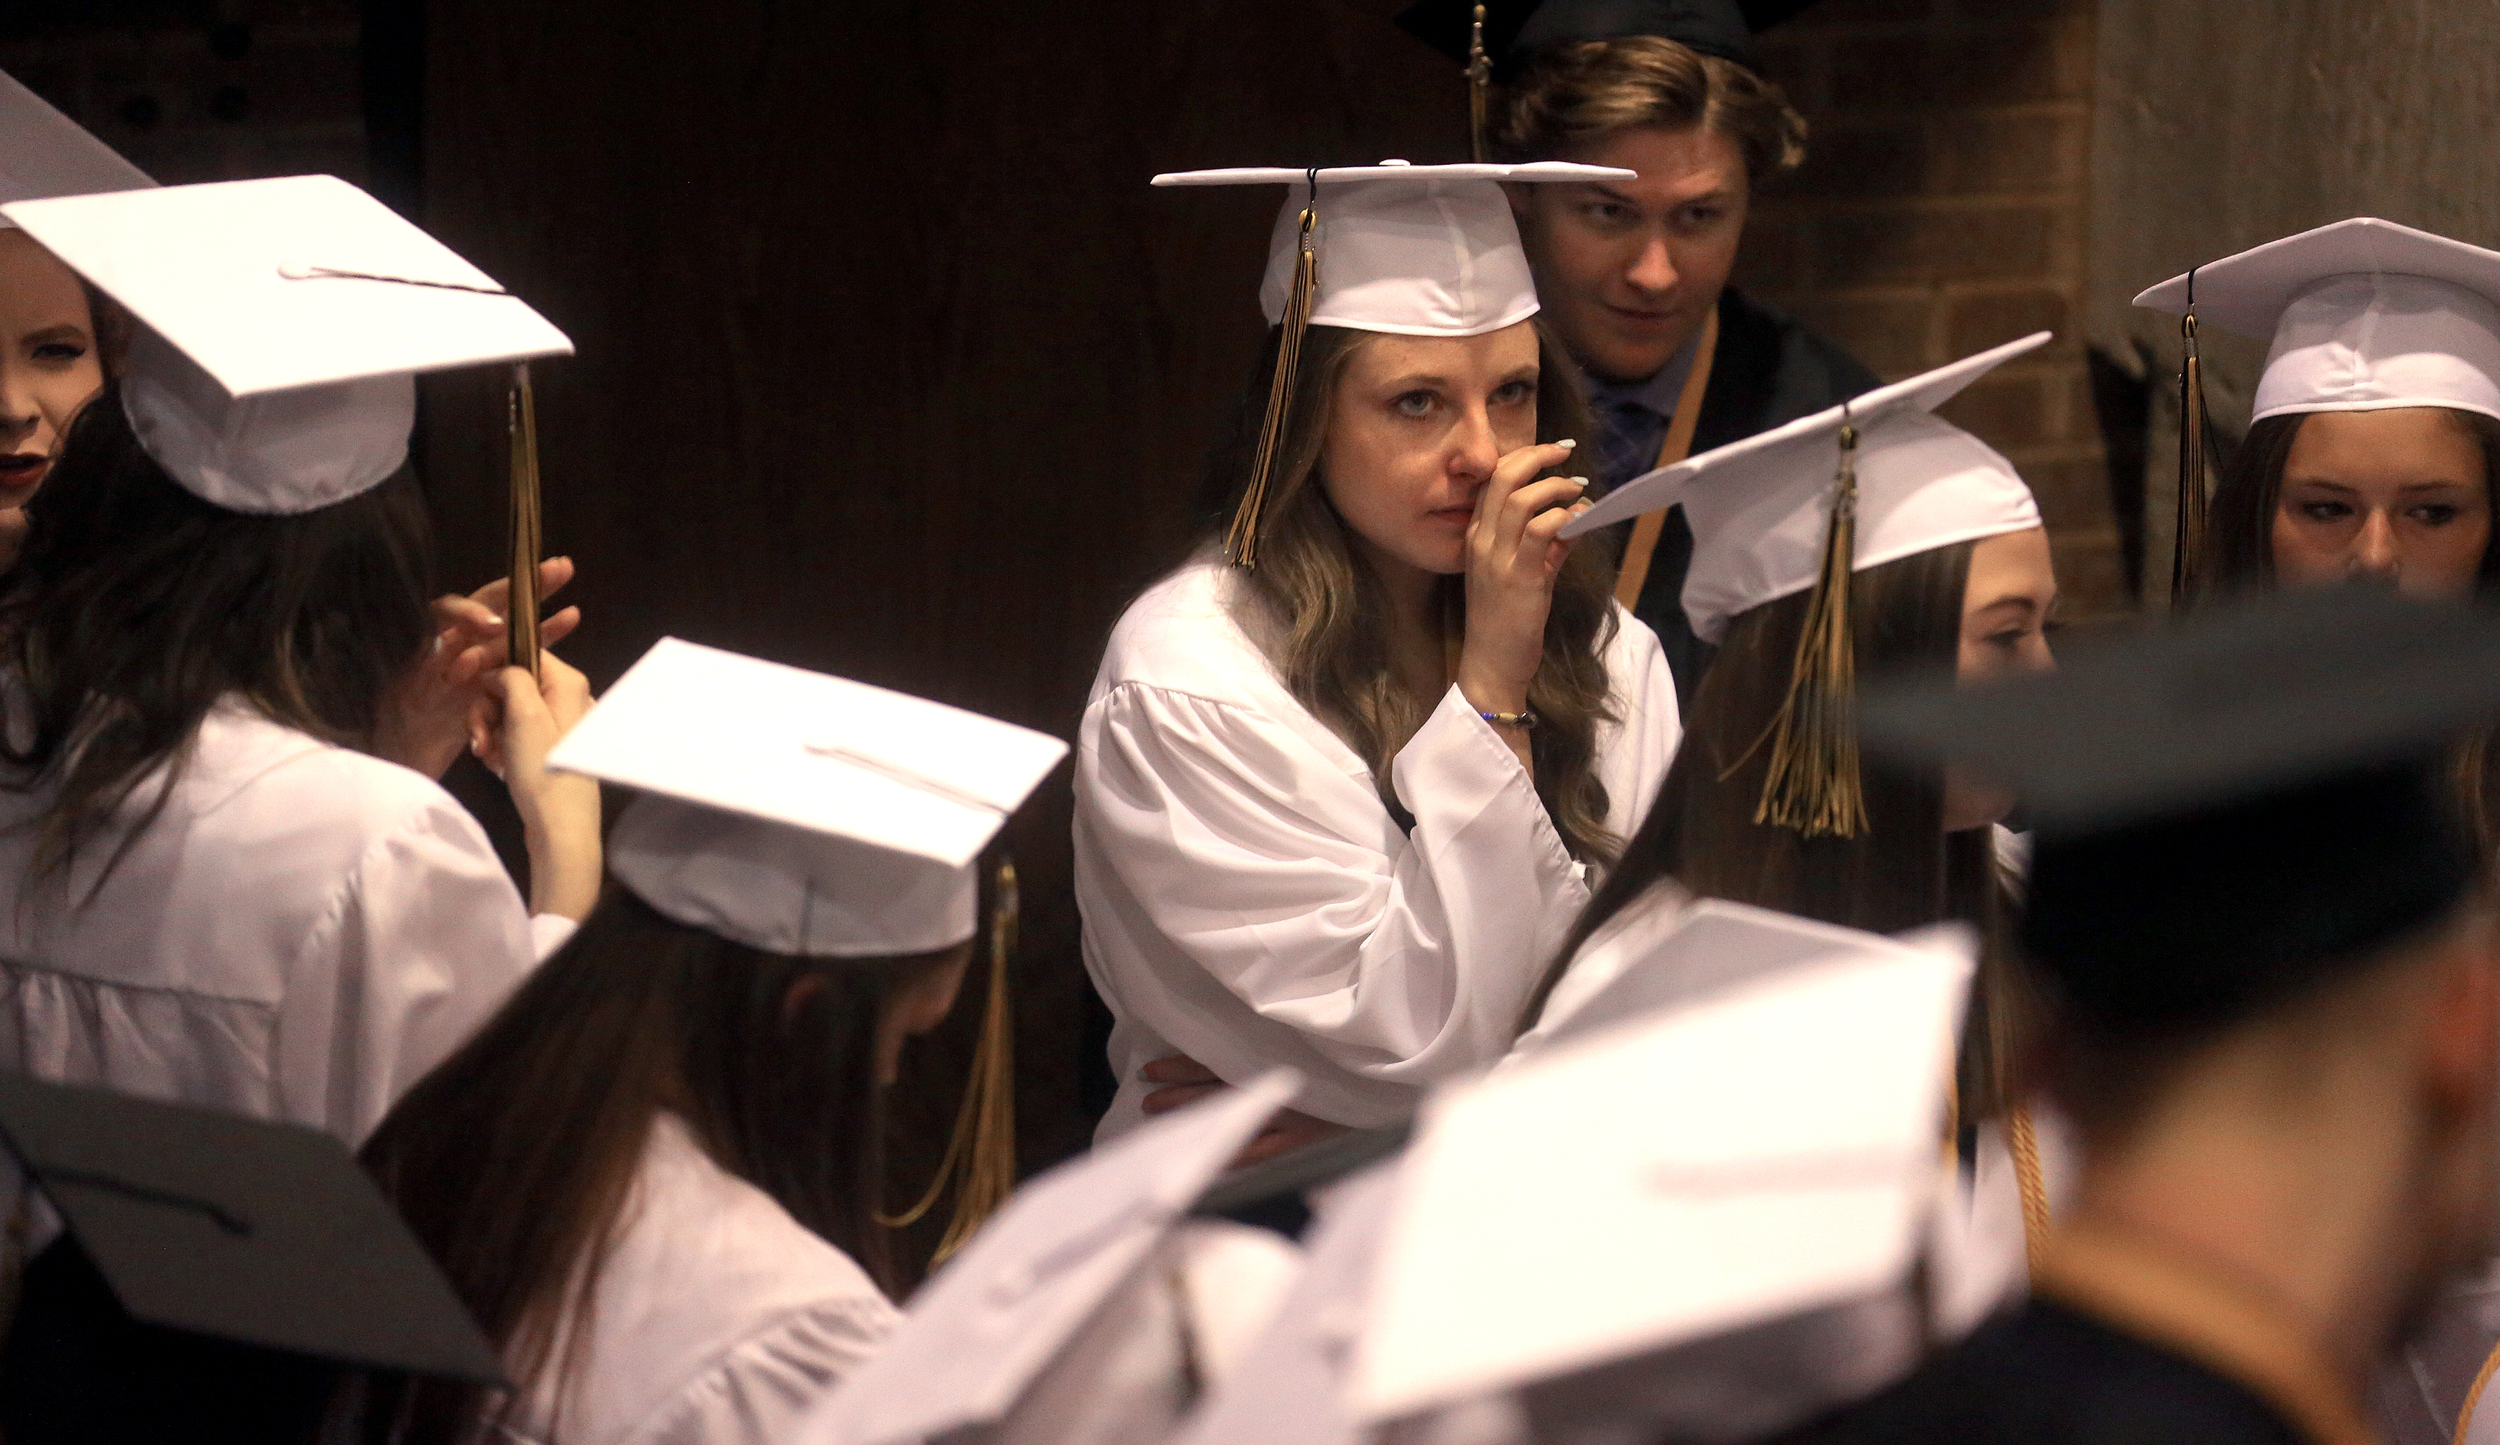 A student had time to reflect before processing with her classmates Sunday. David Spencer/The State Journal-Register